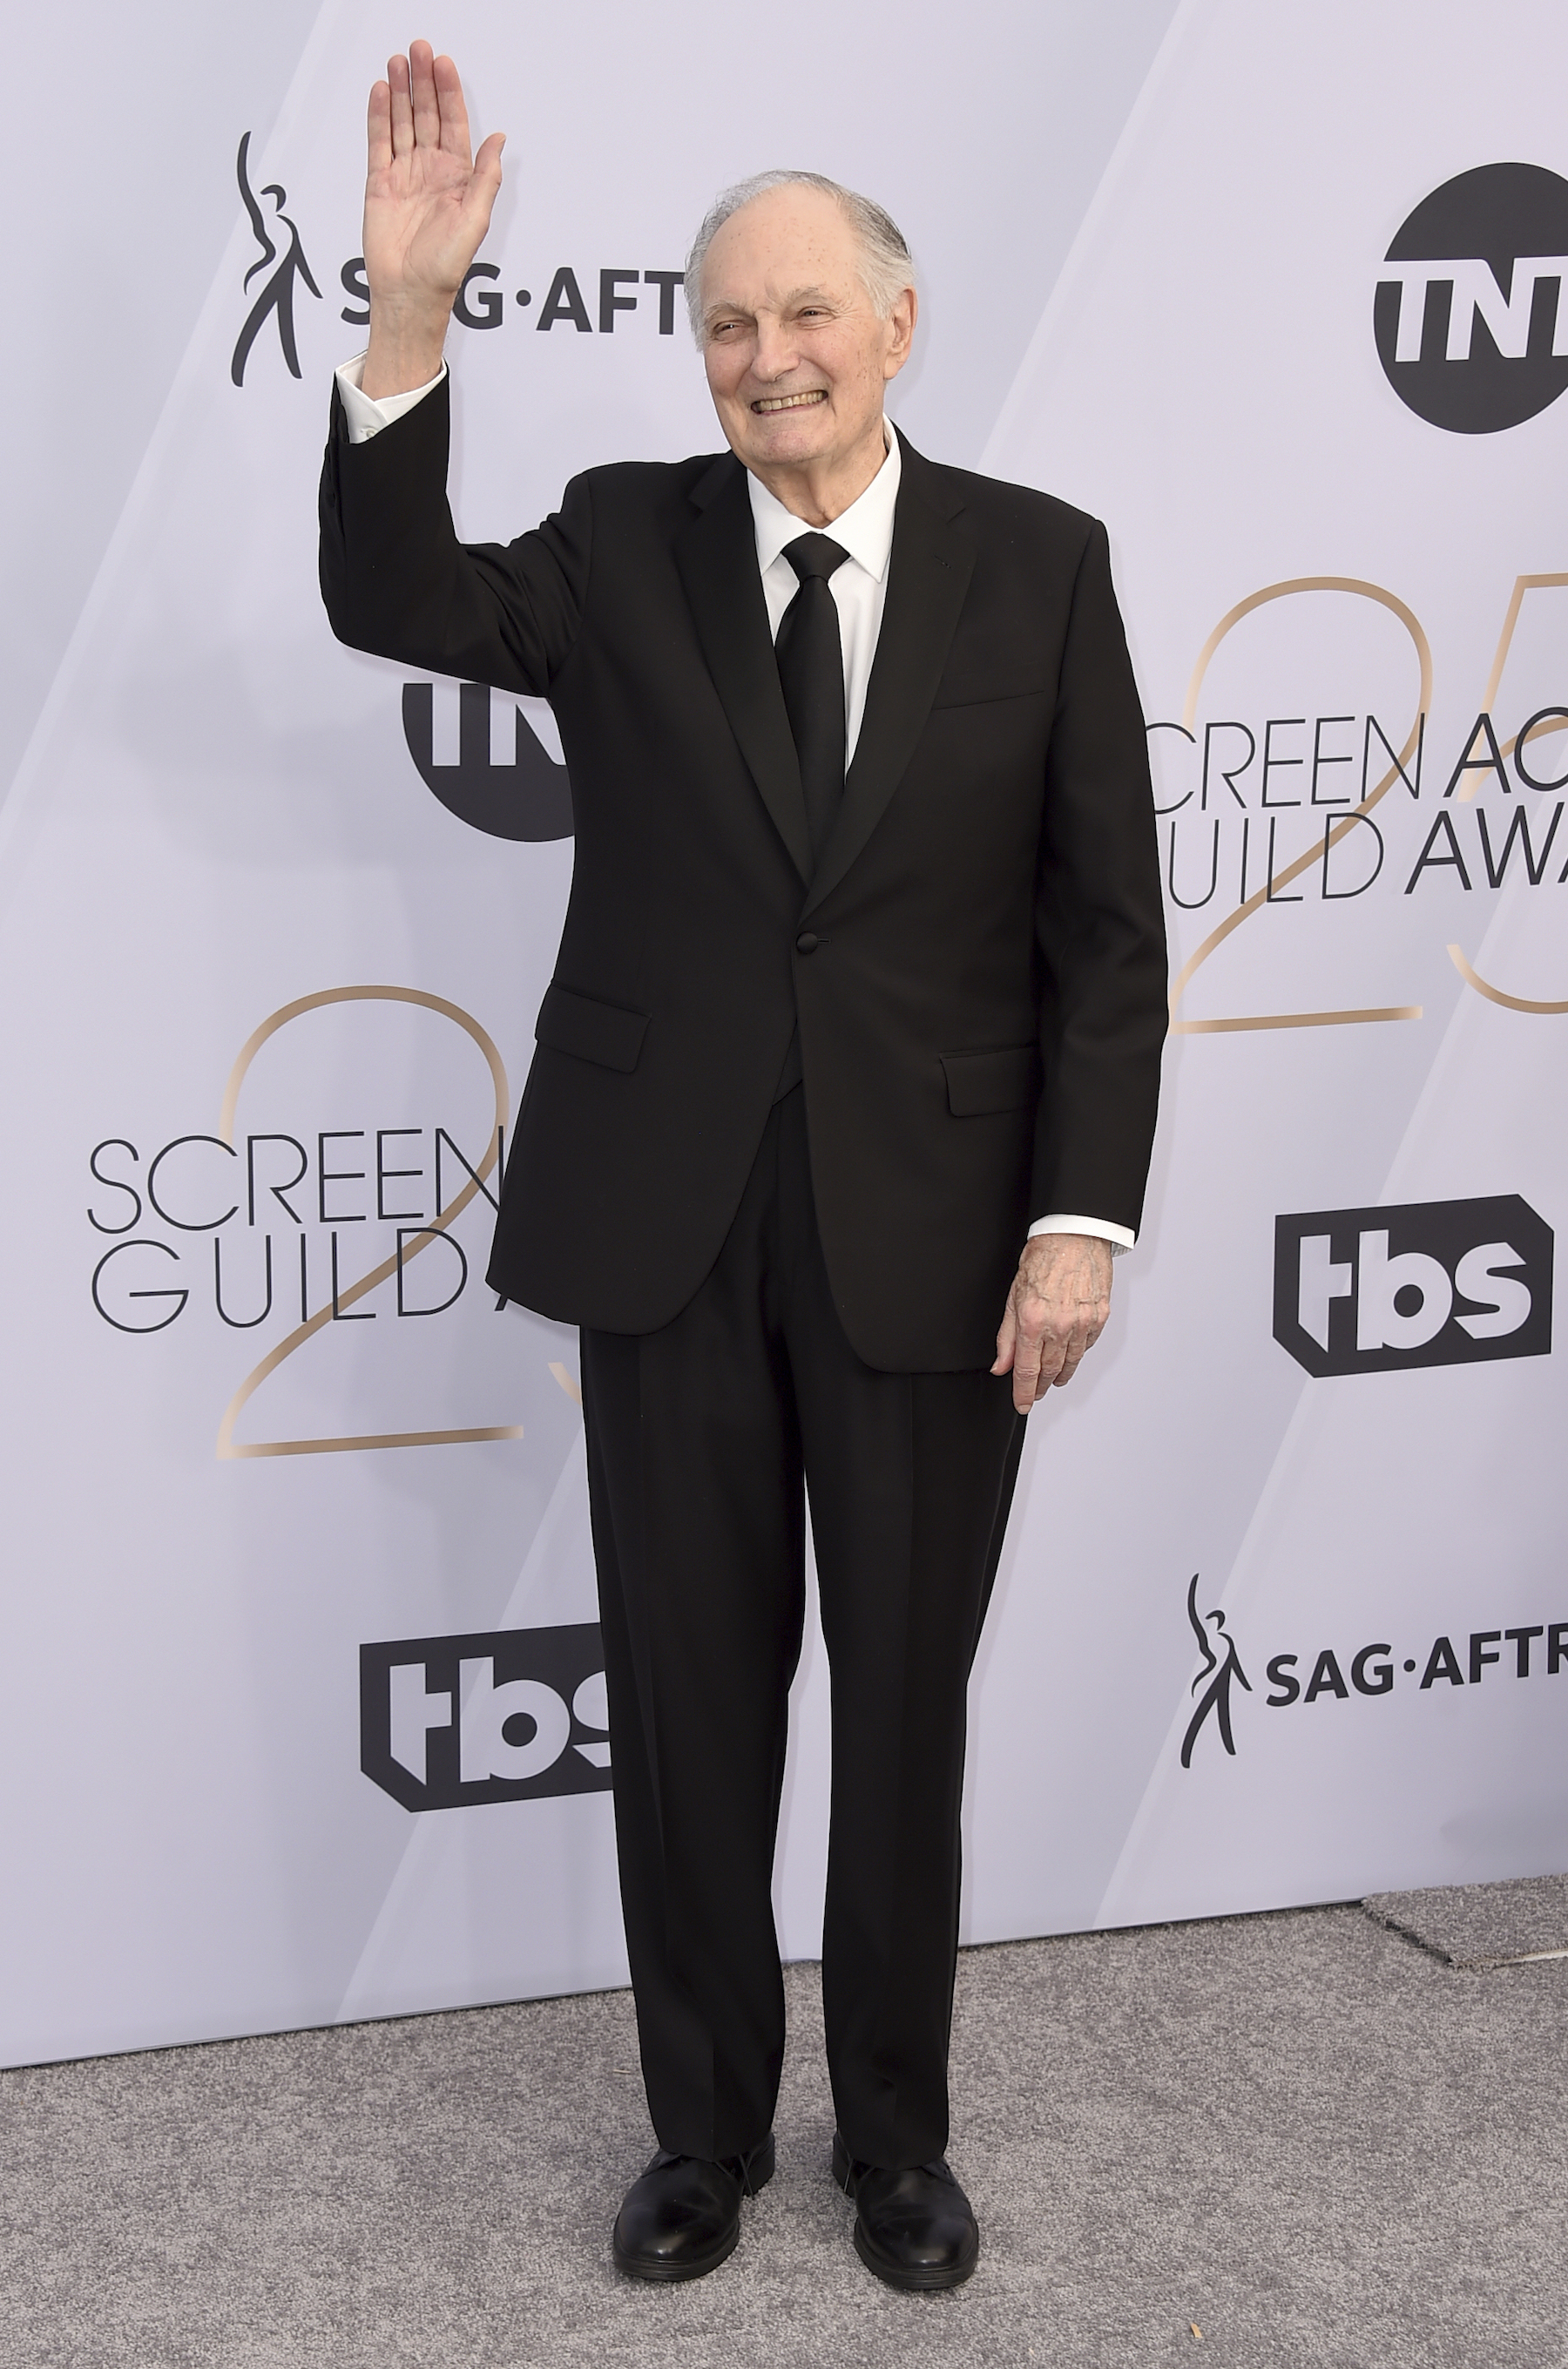 <div class='meta'><div class='origin-logo' data-origin='AP'></div><span class='caption-text' data-credit='Jordan Strauss/Invision/AP'>Alan Alda arrives at the 25th annual Screen Actors Guild Awards at the Shrine Auditorium & Expo Hall on Sunday, Jan. 27, 2019, in Los Angeles.</span></div>